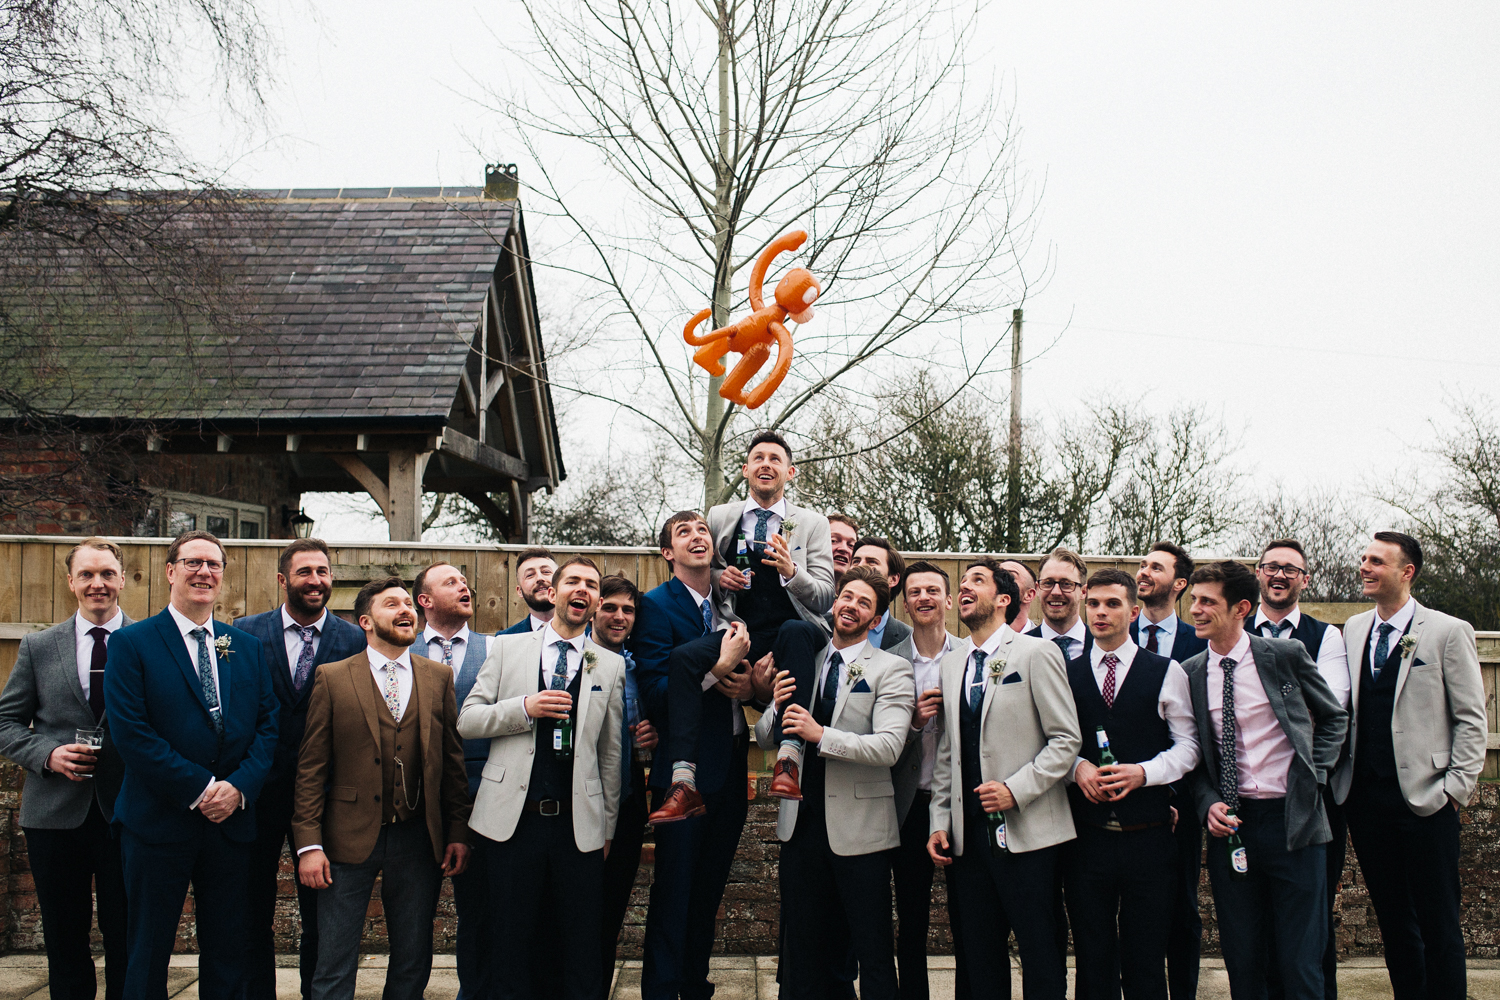 a large group of men at a wedding hold the groom on their shoulders, and inflatable monkey is in the air above them